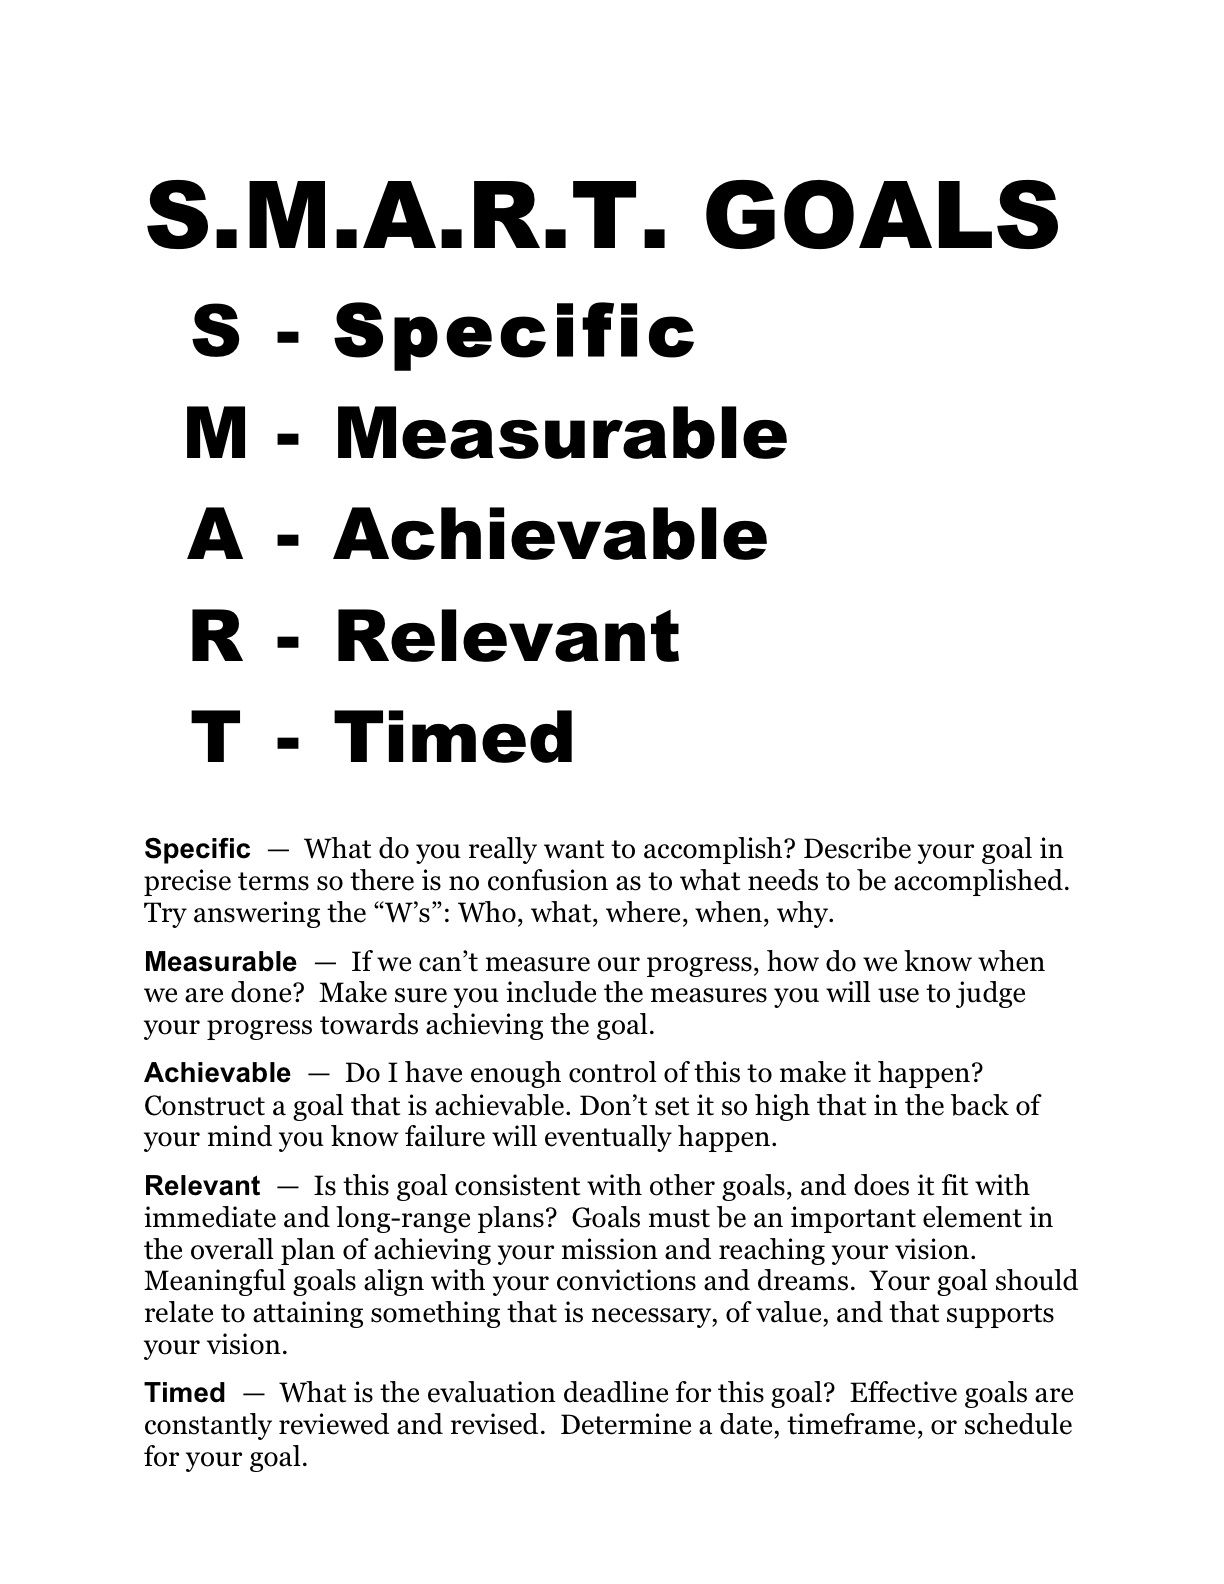 Printables Smart Goals Worksheet For Students 1000 images about smart goals on pinterest template middle school music and new years resolutions